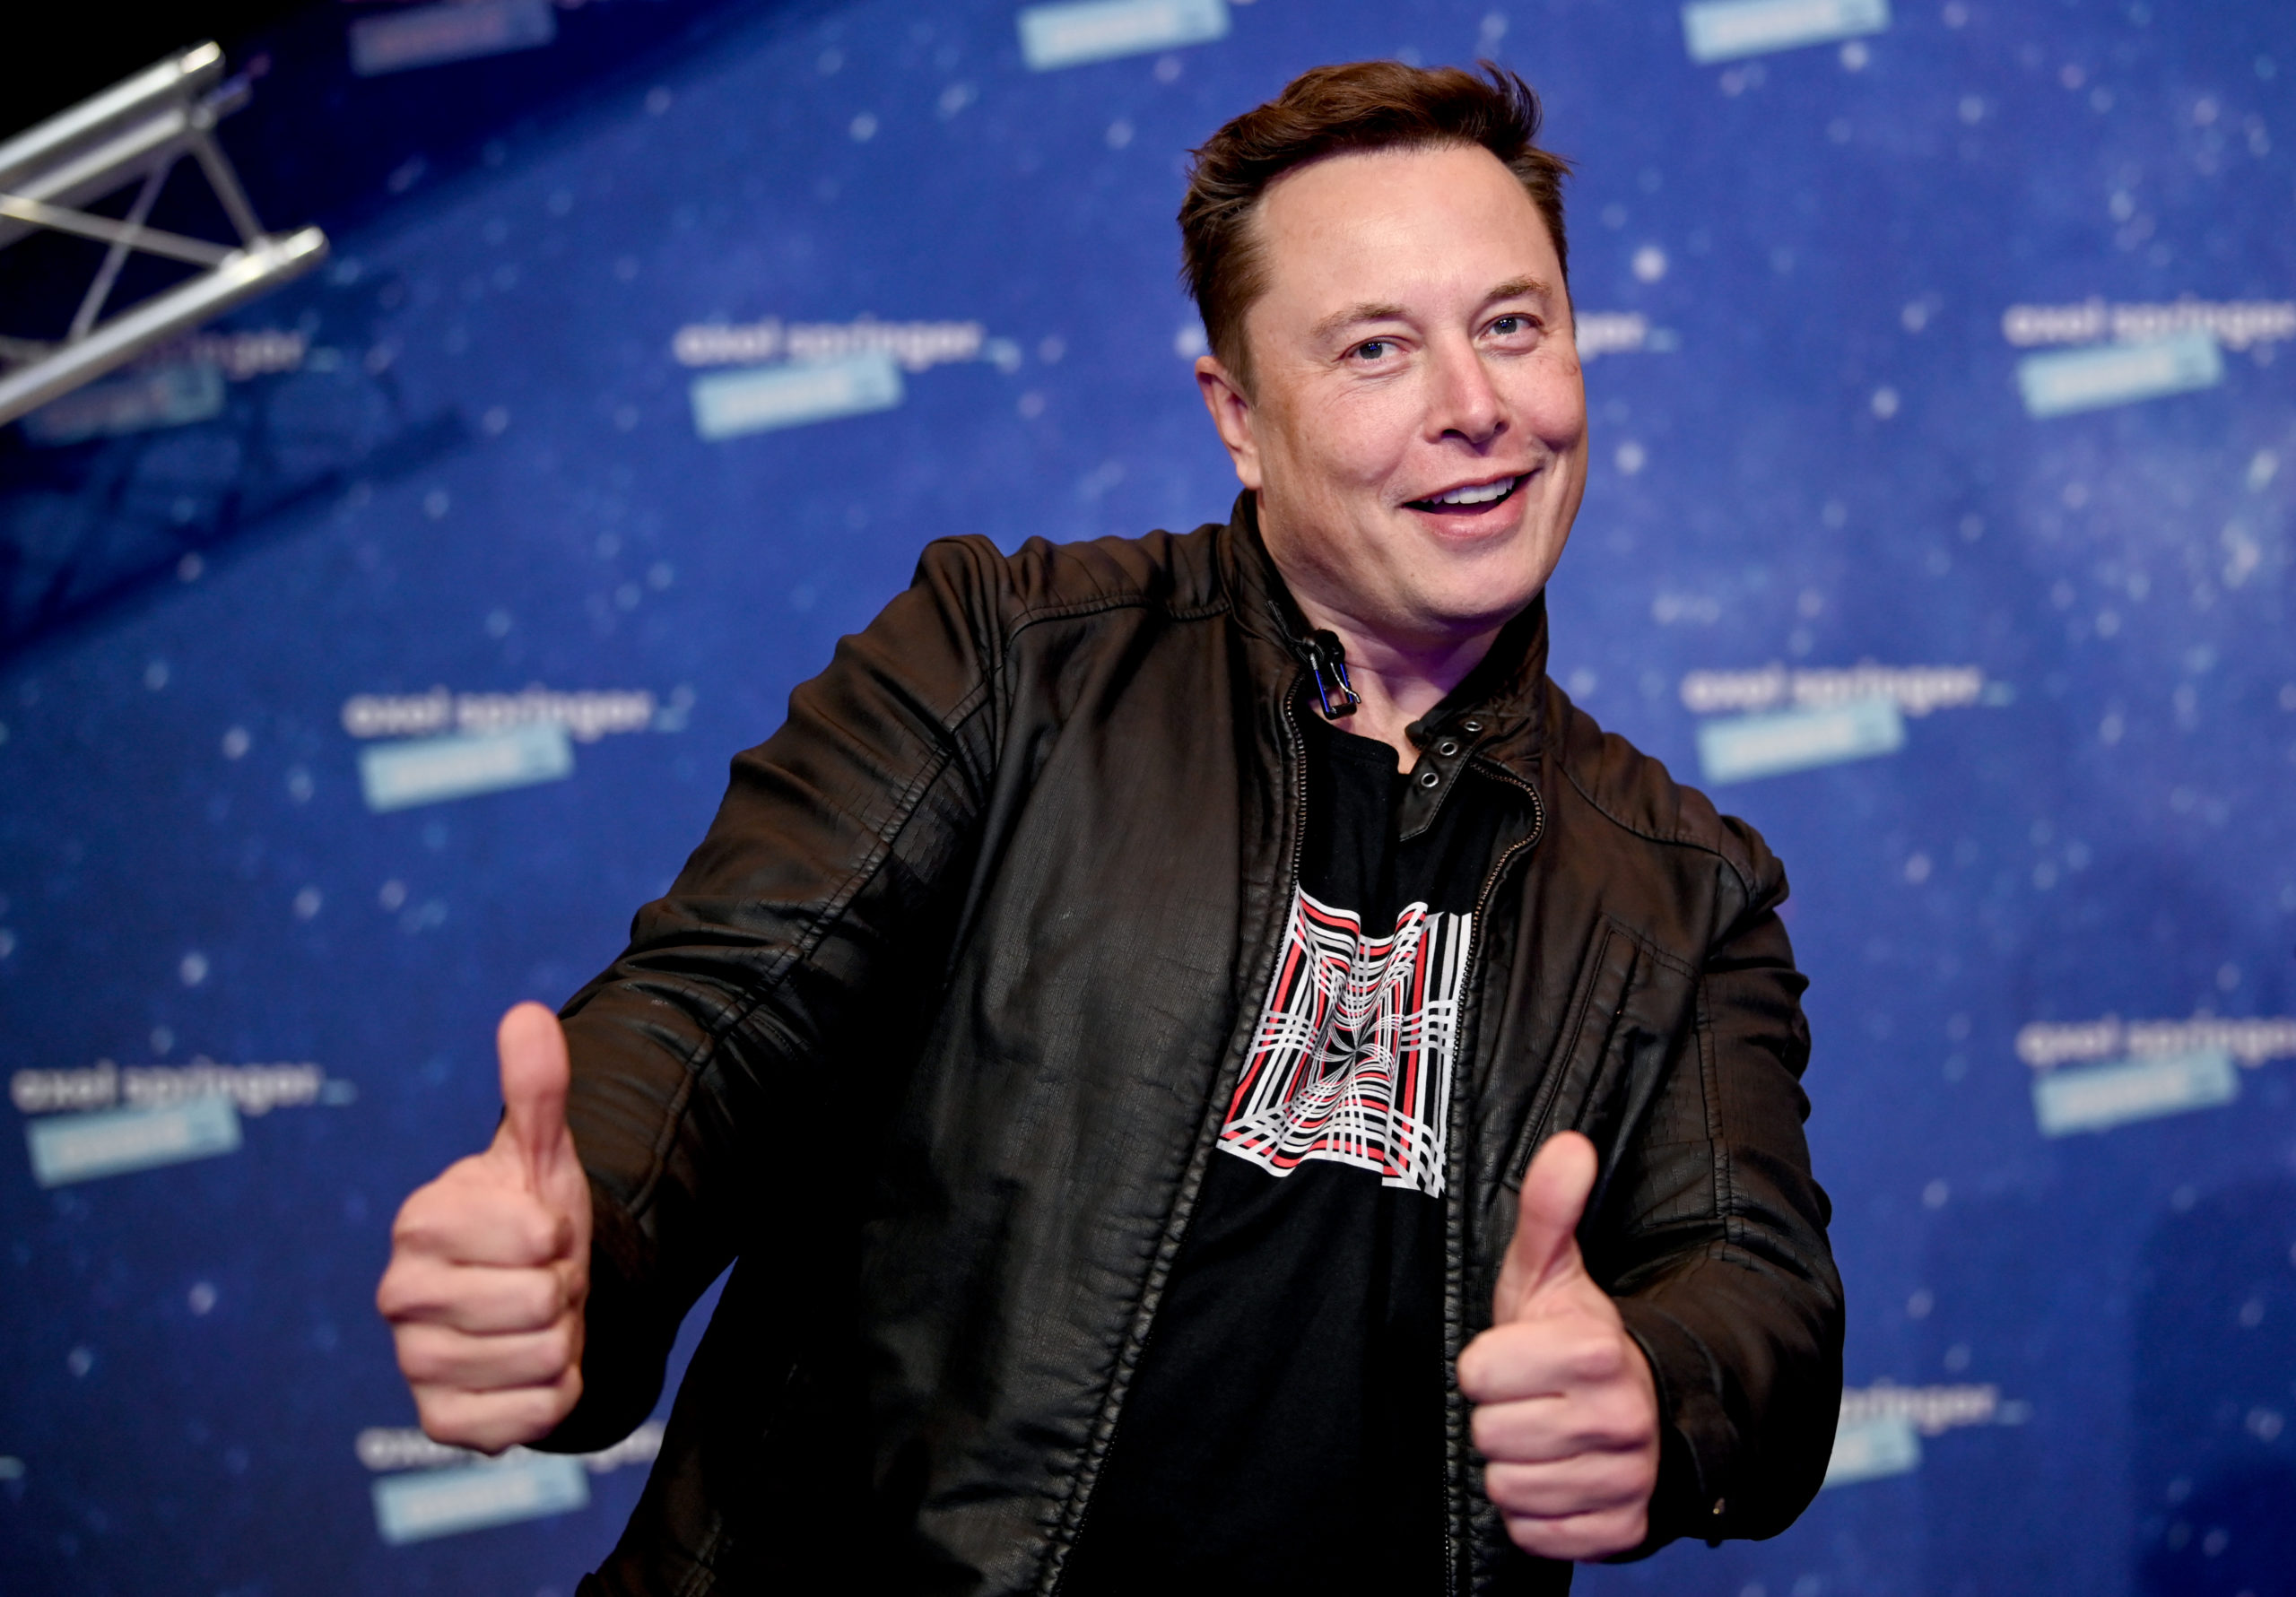 SpaceX owner and Tesla CEO Elon Musk arrives on the red carpet for the Axel Springer Award 2020 on December 01, 2020 in Berlin, Germany. (Photo by Britta Pedersen-Pool/Getty Images)